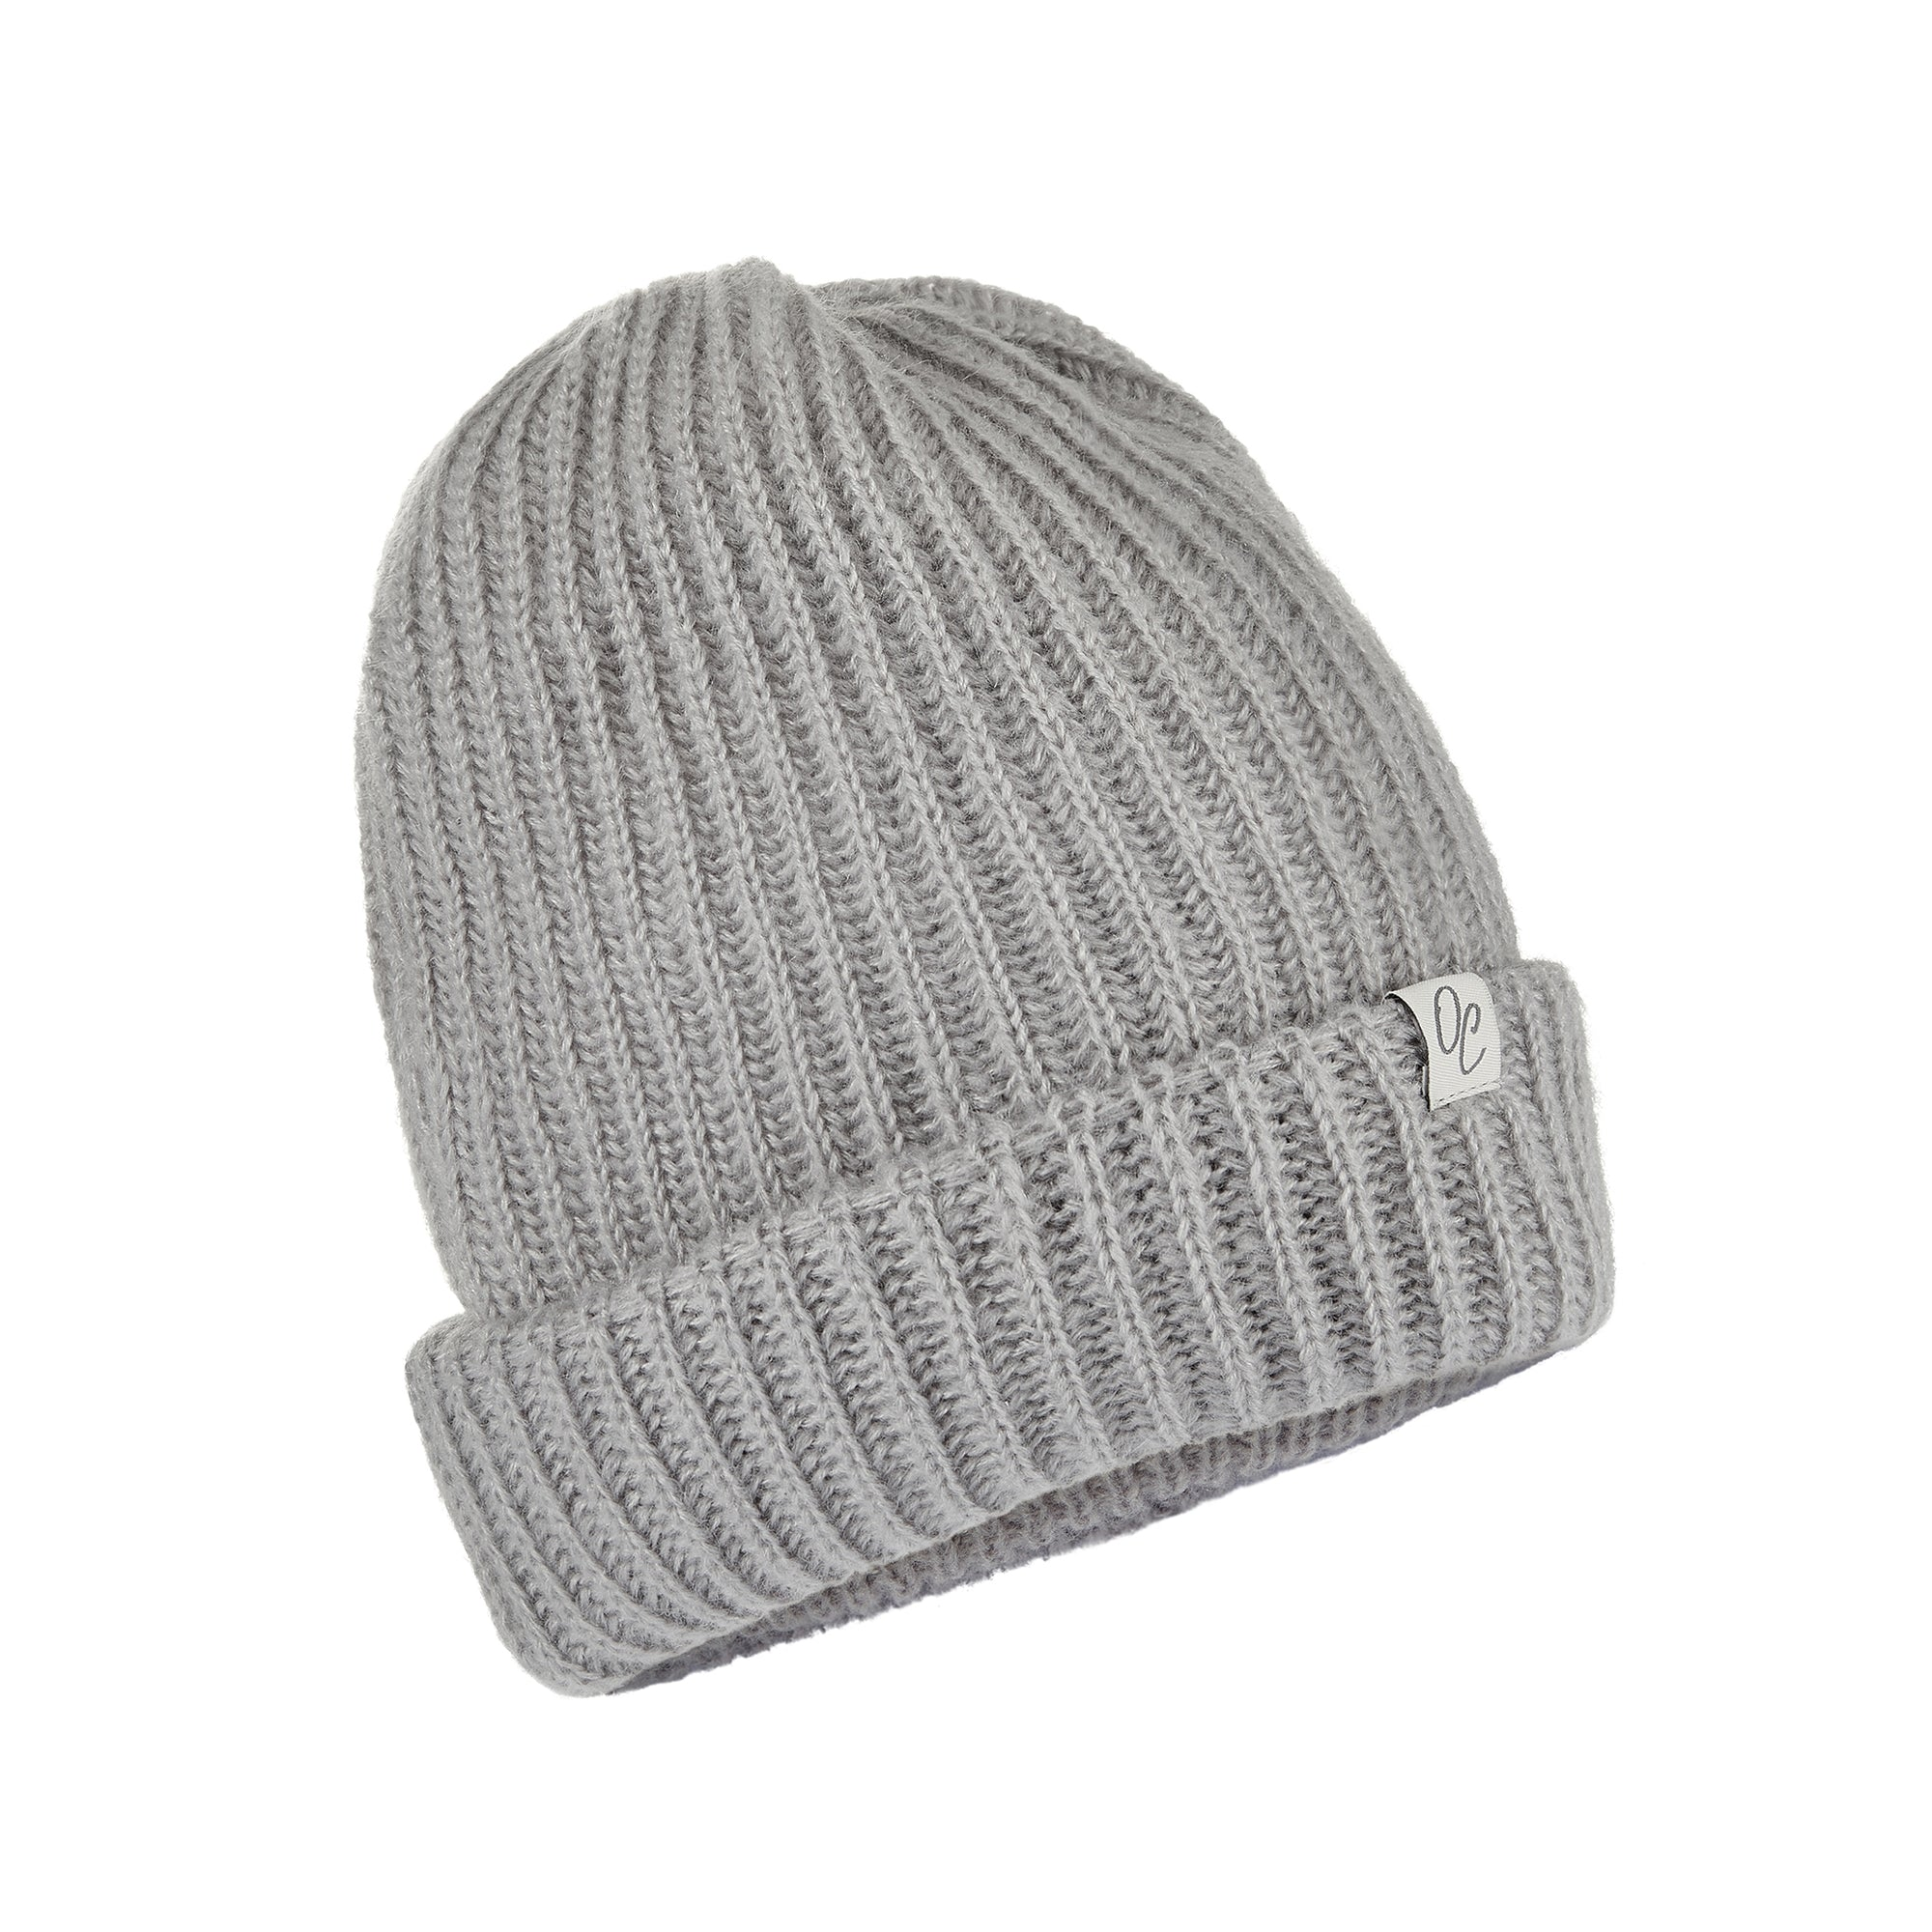 Only Curls Grey Satin Lined Knitted Beanie Hat